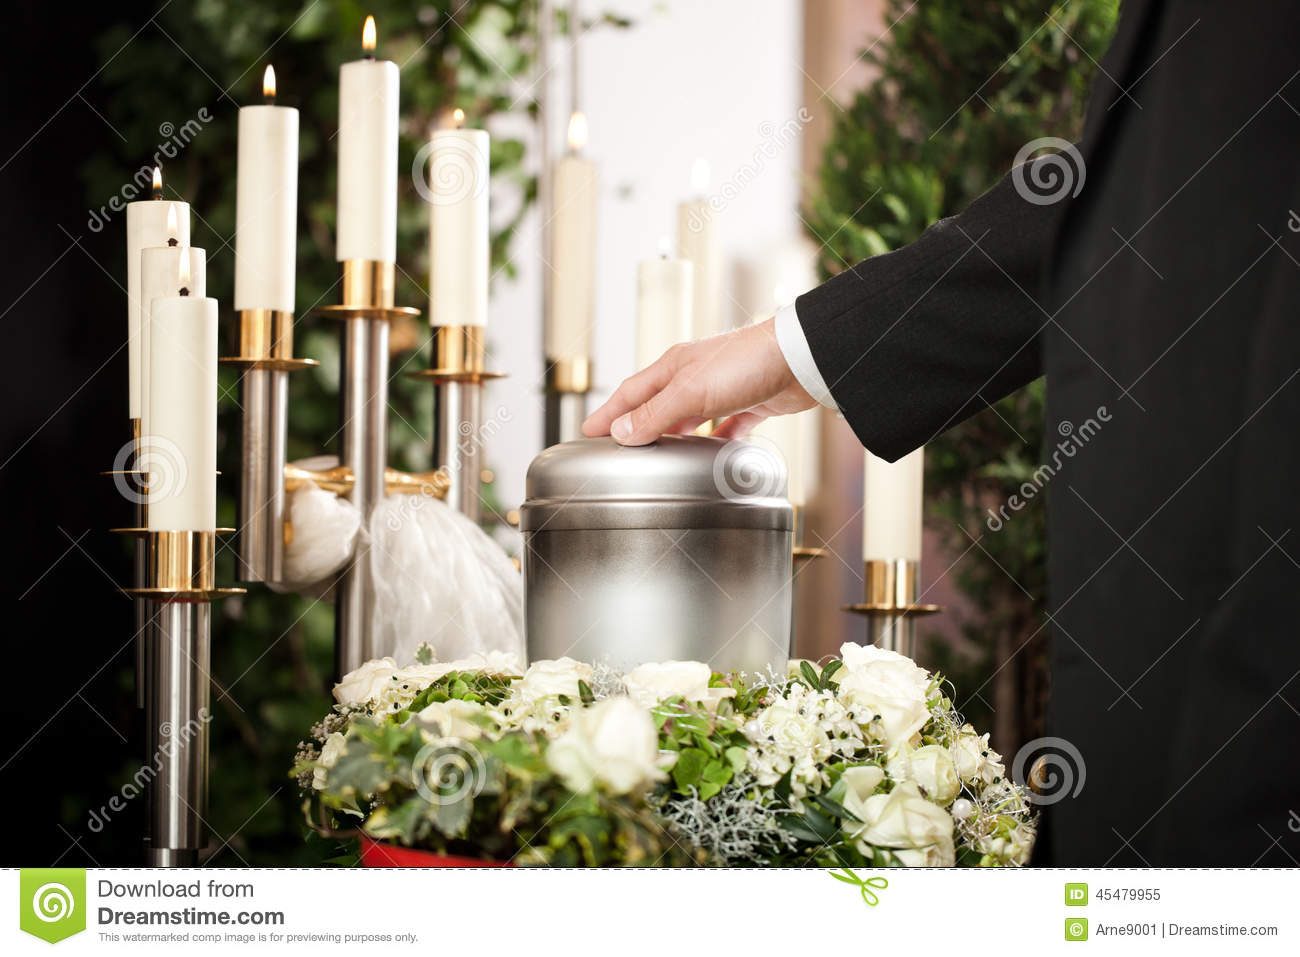 Grief - Funeral and cemetery